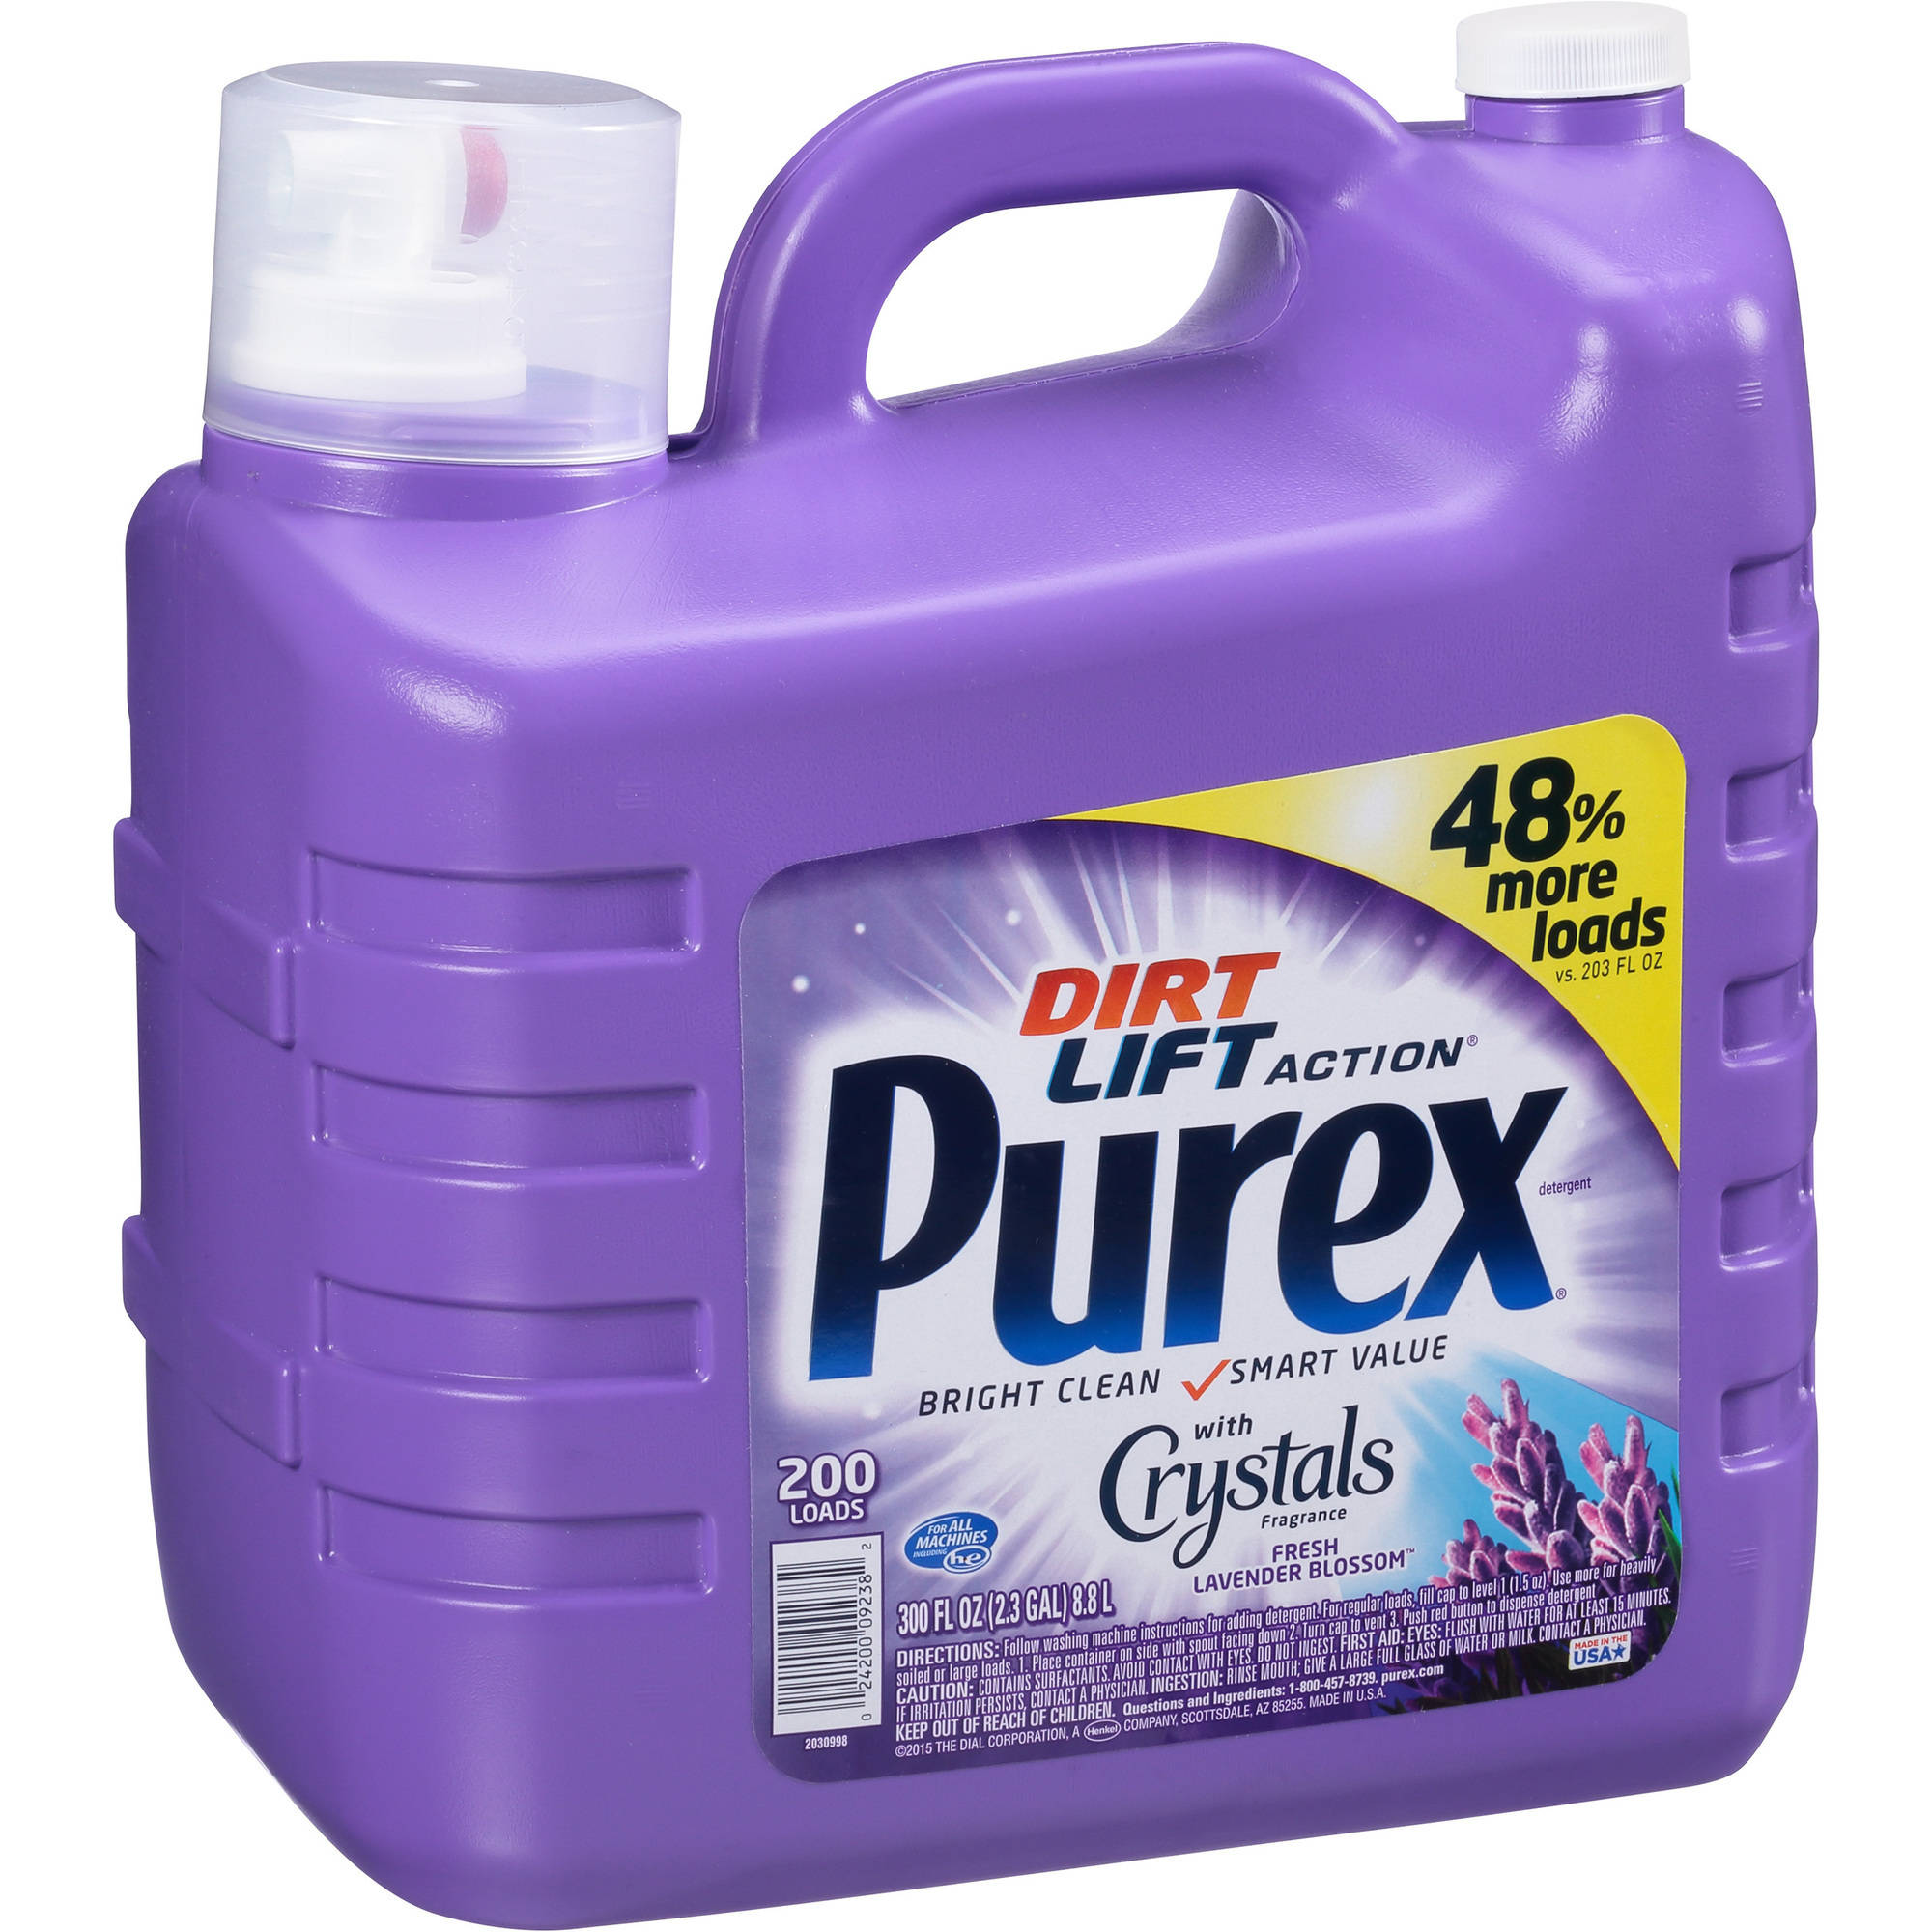 Purex Liquid Laundry Detergent with Crystals Fragrance, Fresh Lavender Blossom, 300 Fluid Ounces, 200 Loads